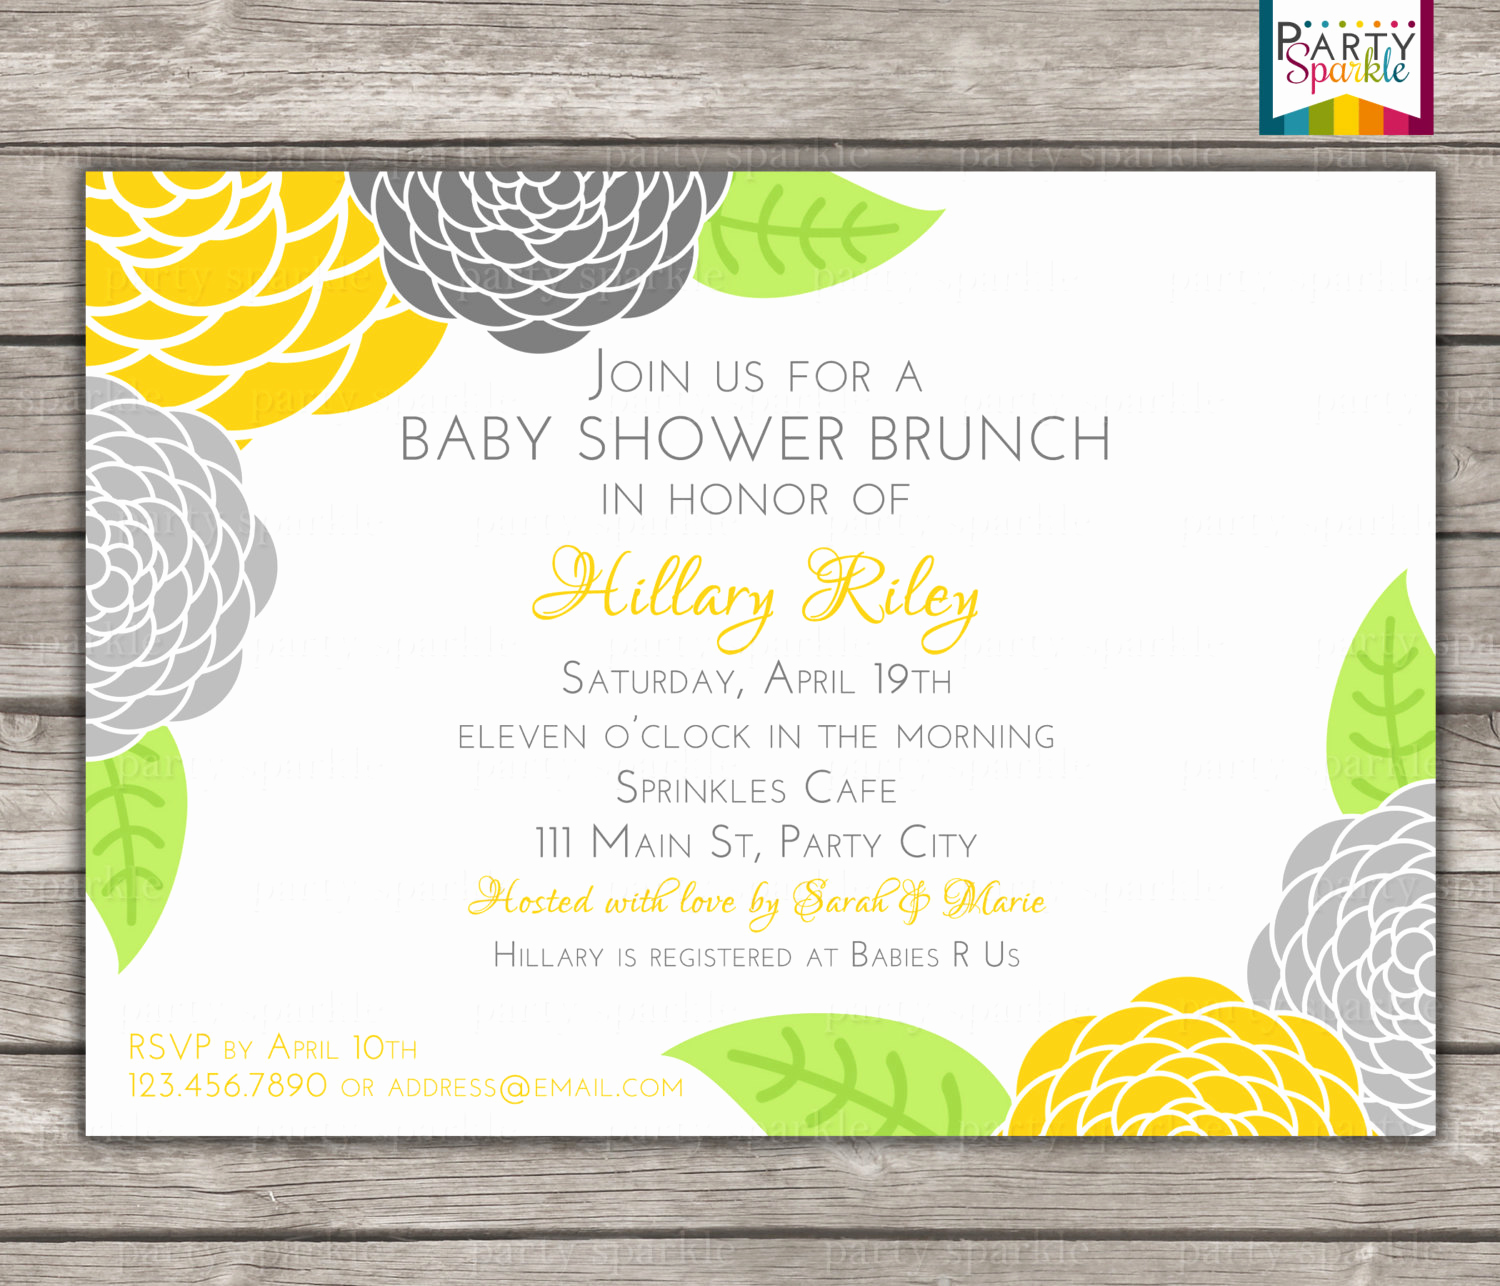 Baby Shower Brunch Invitation Fresh Printable Floral Brunch Baby Shower Invitation Uni Yellow